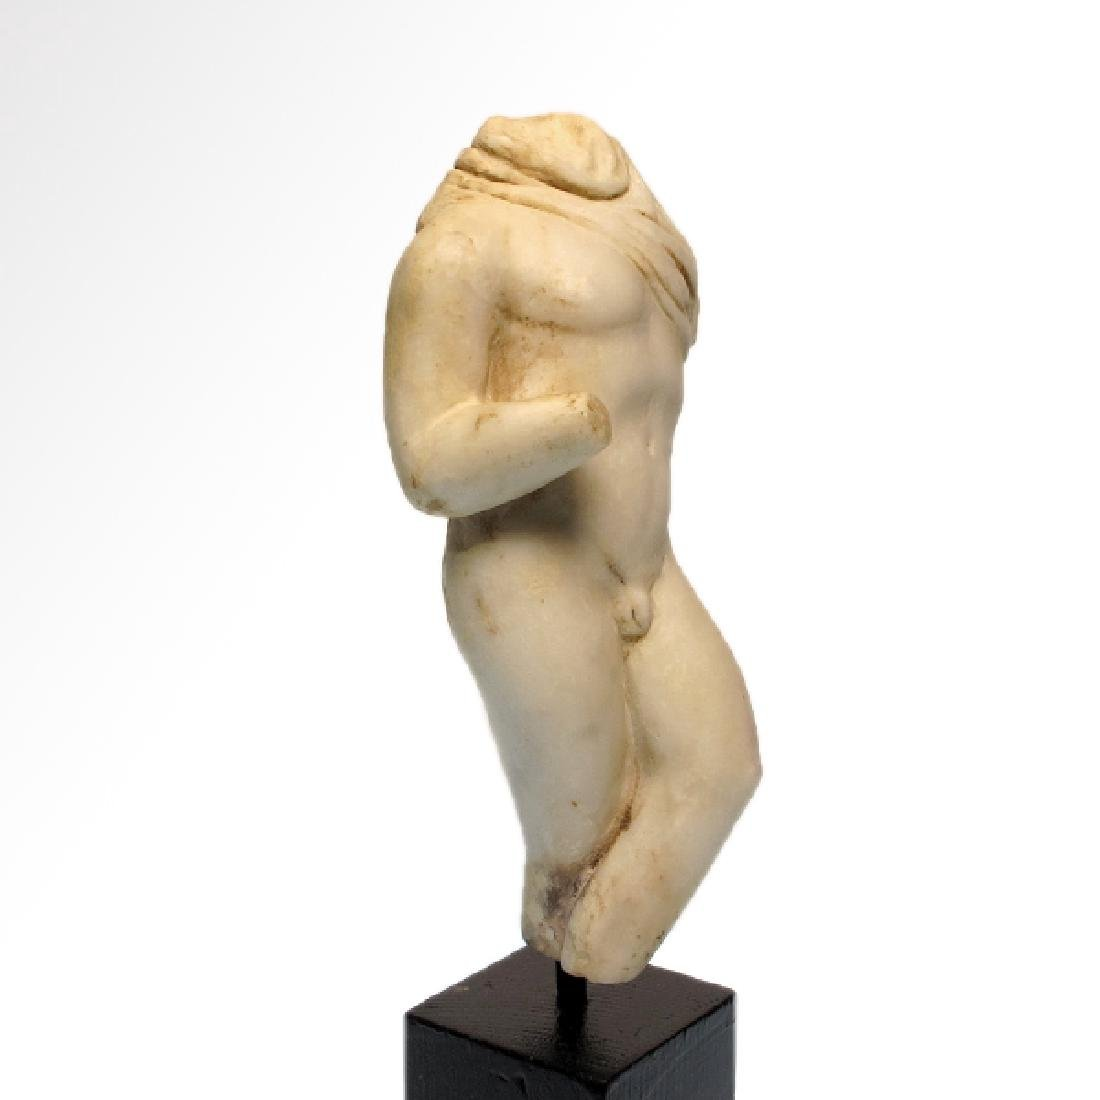 Roman Marble Figure of a Nude Young Man, c. 2nd-3rd - 2